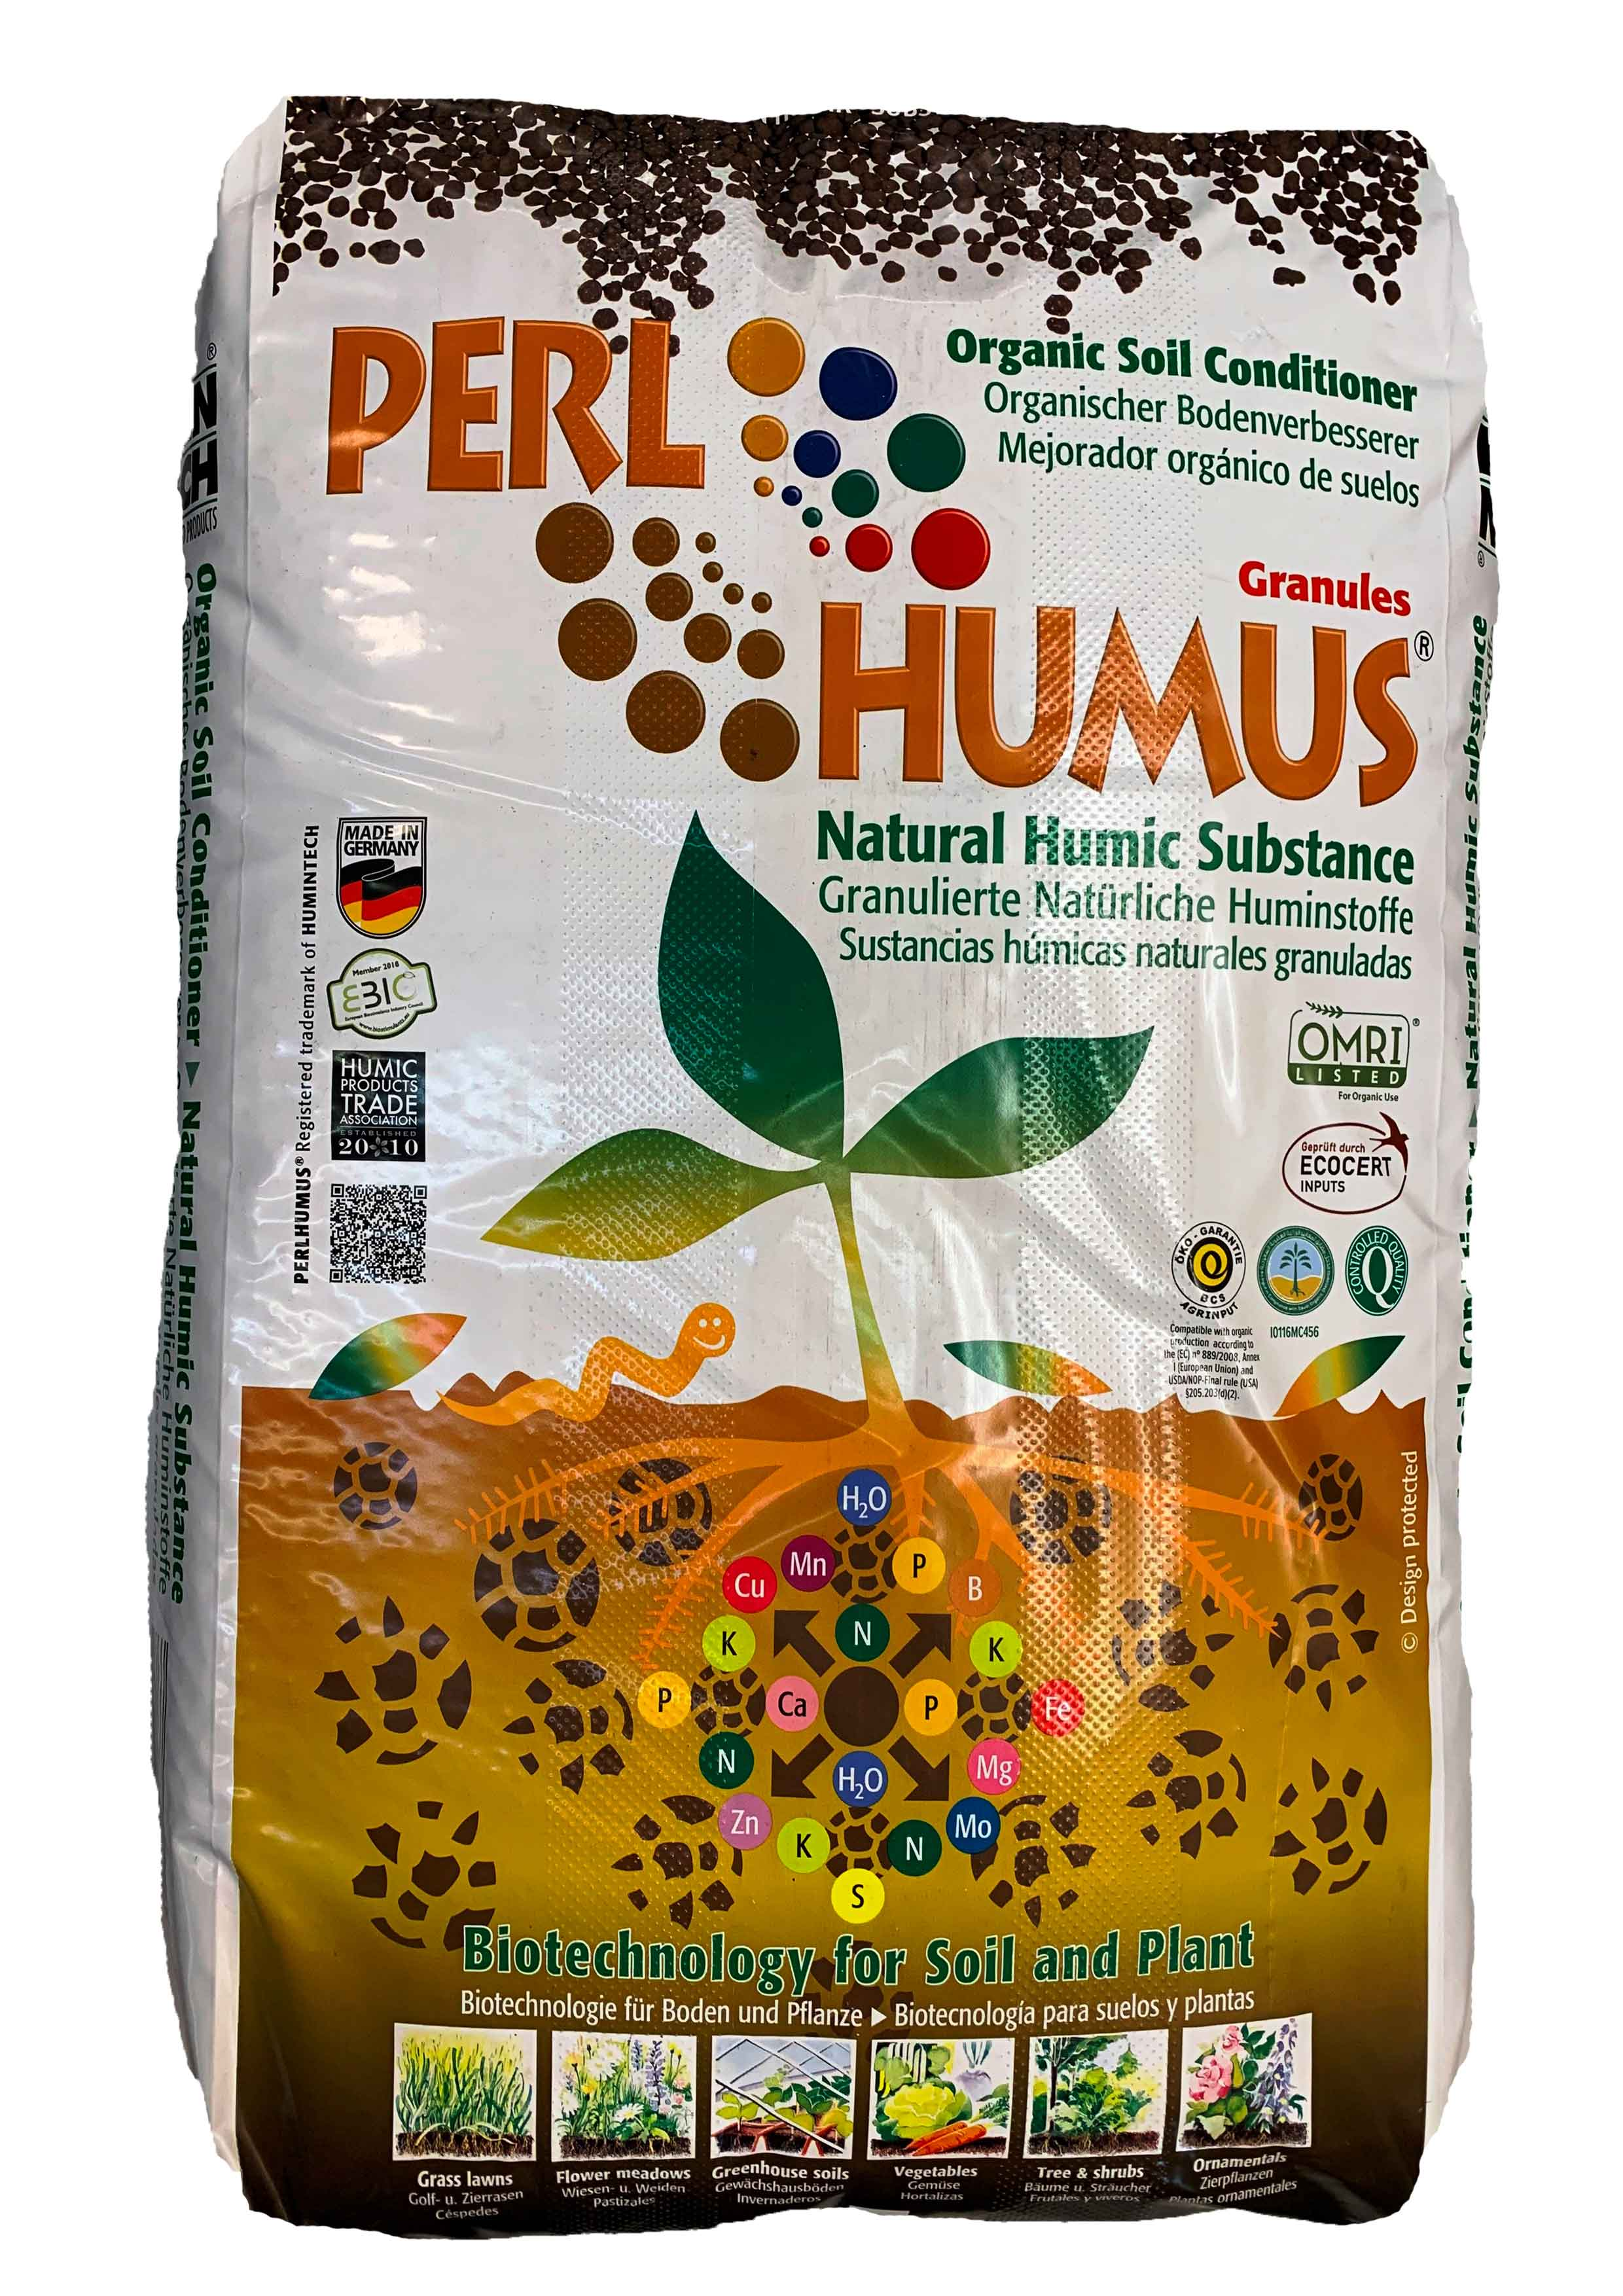 Pearl Humus Granules Soil Fertilizer Pesticide